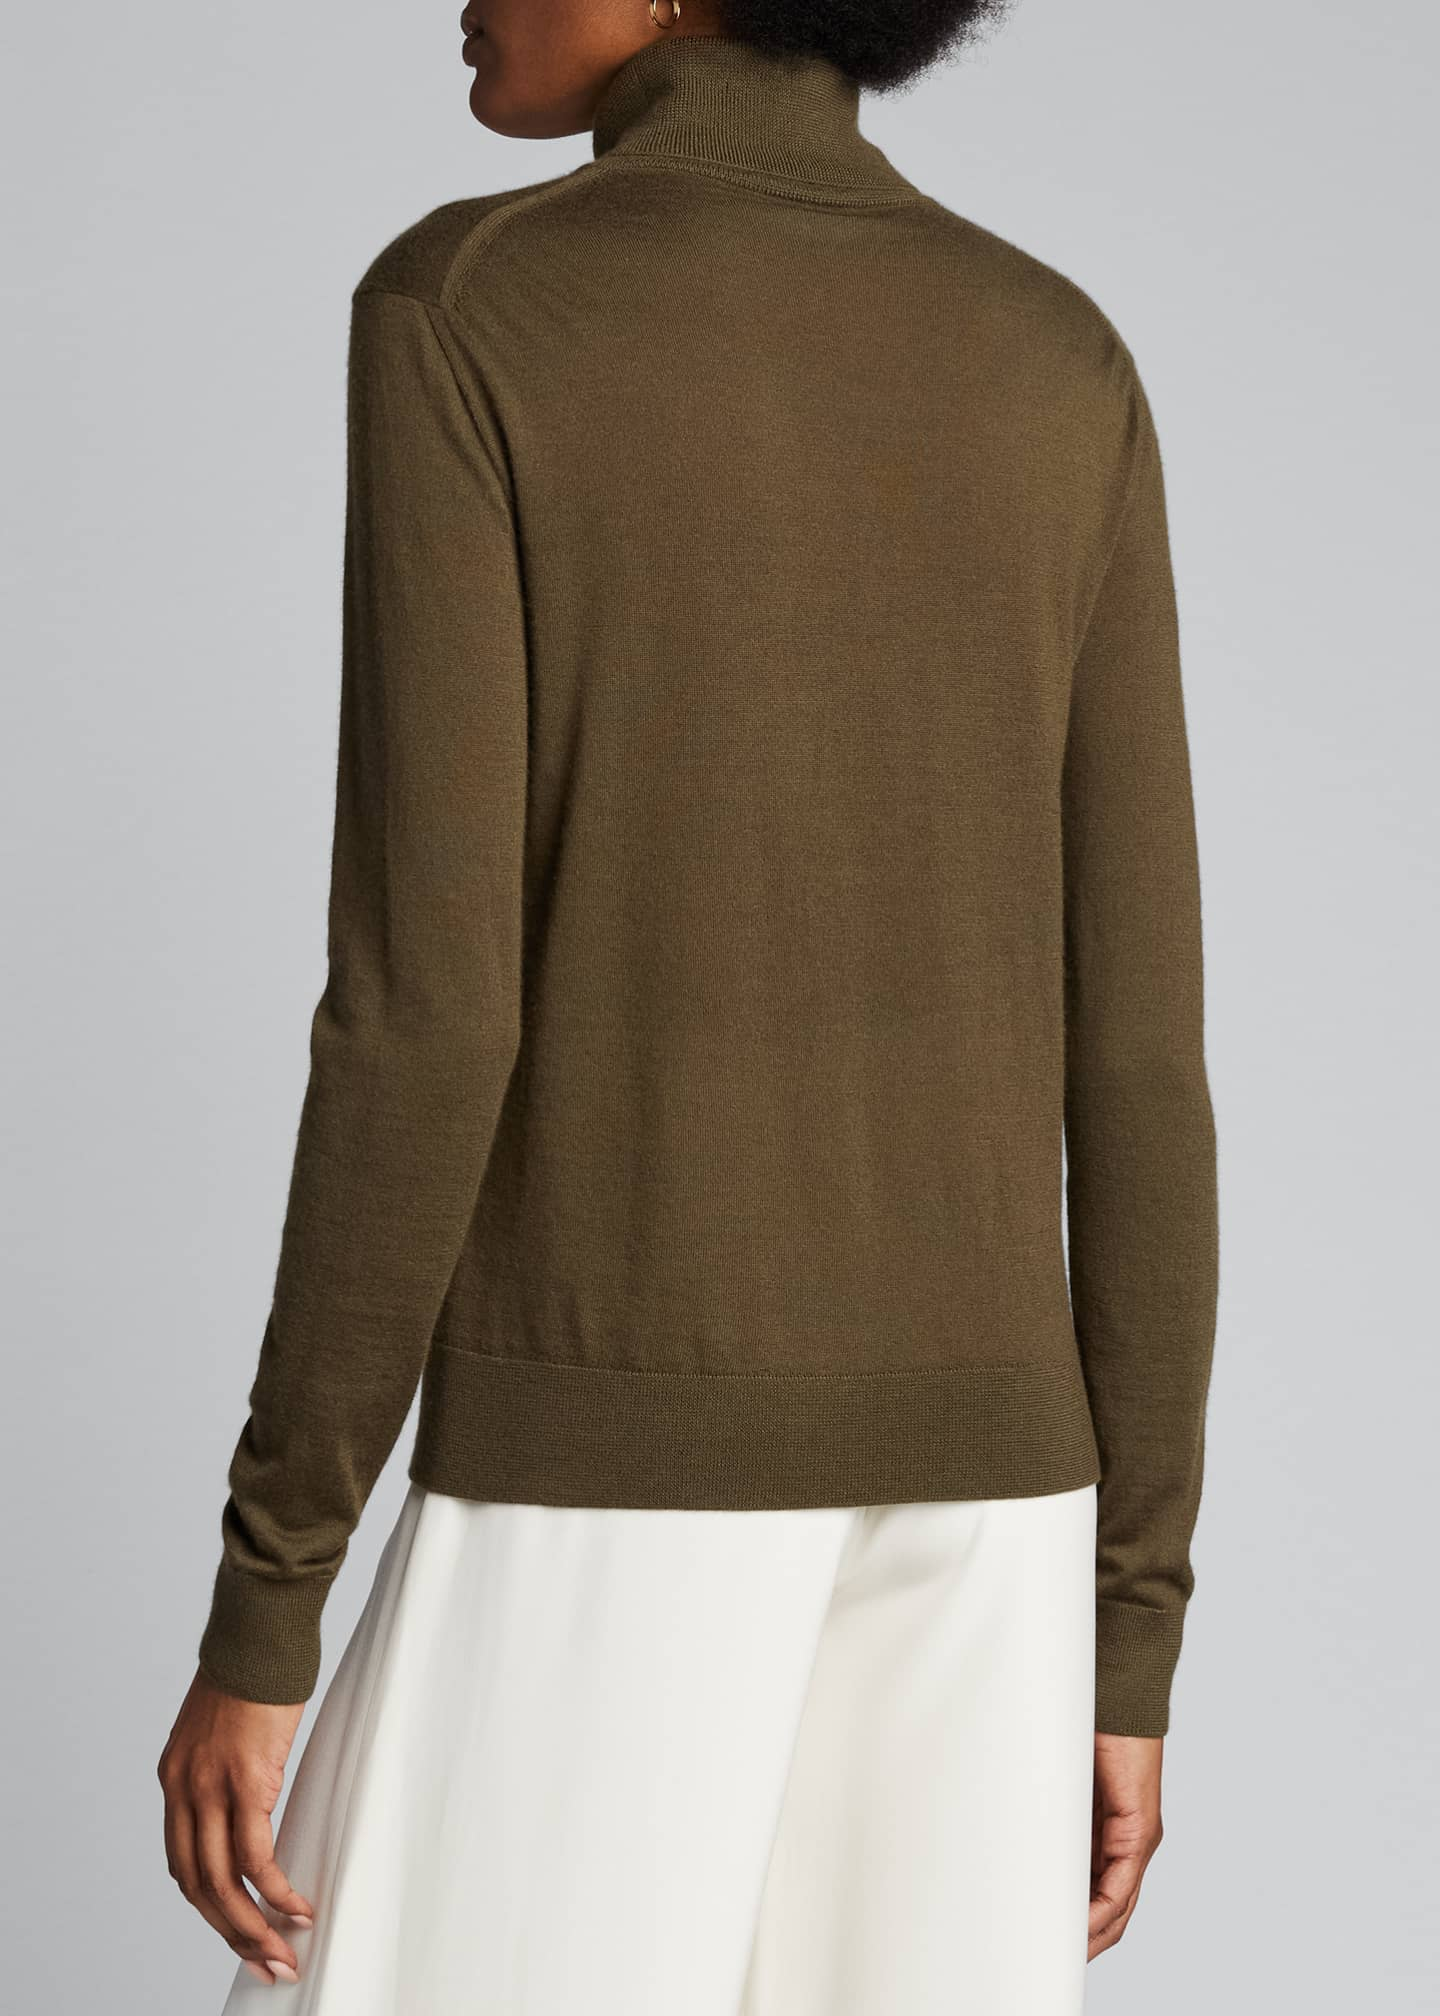 Image 2 of 5: Cashmere Fitted Turtleneck Sweater